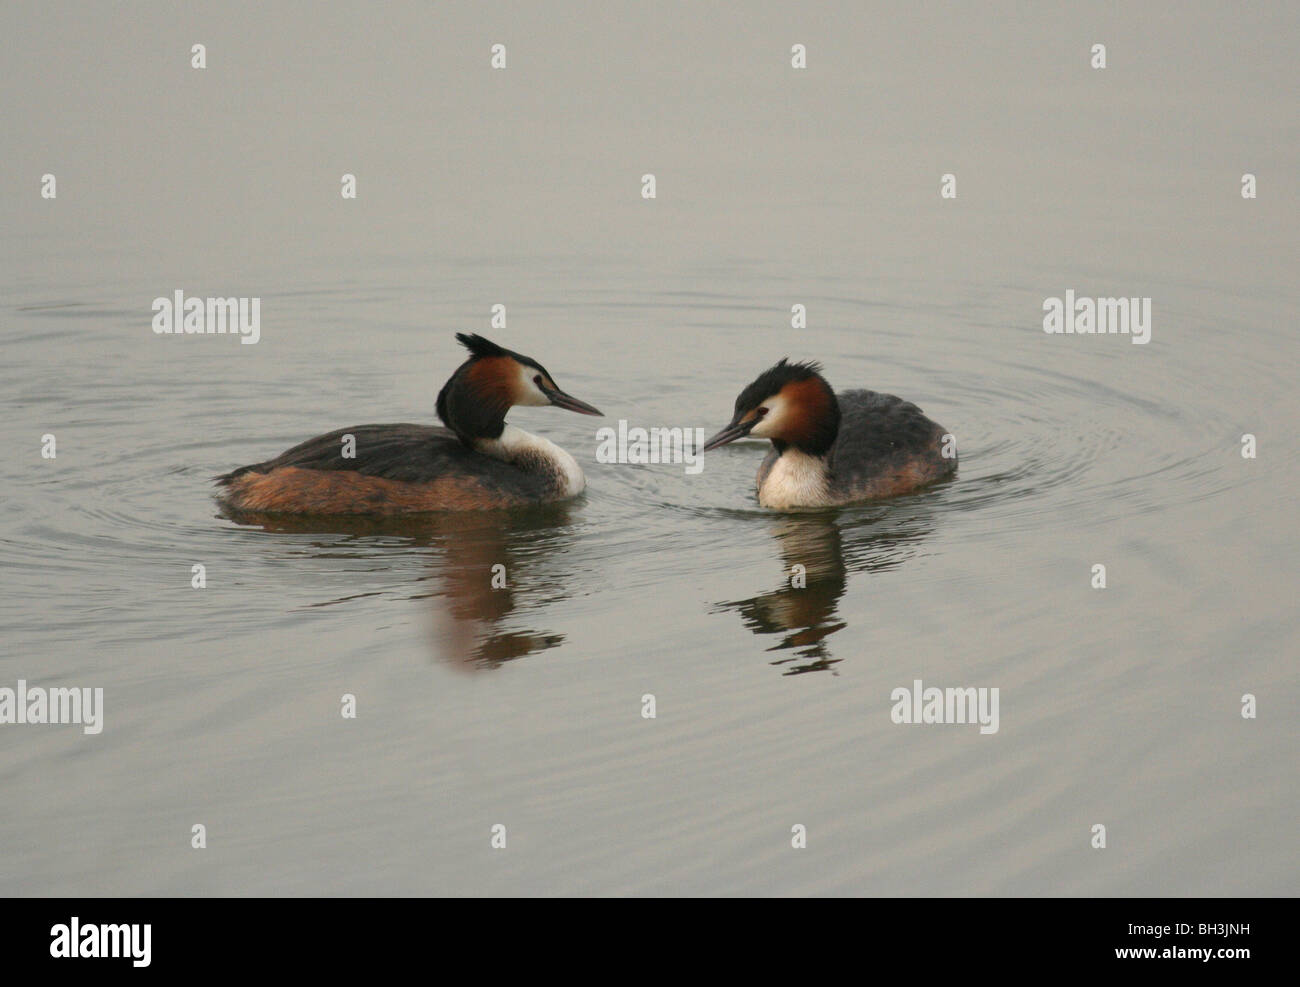 A pair of great crested grebes (Podiceps cristatus) in courtship on a early morning. - Stock Image